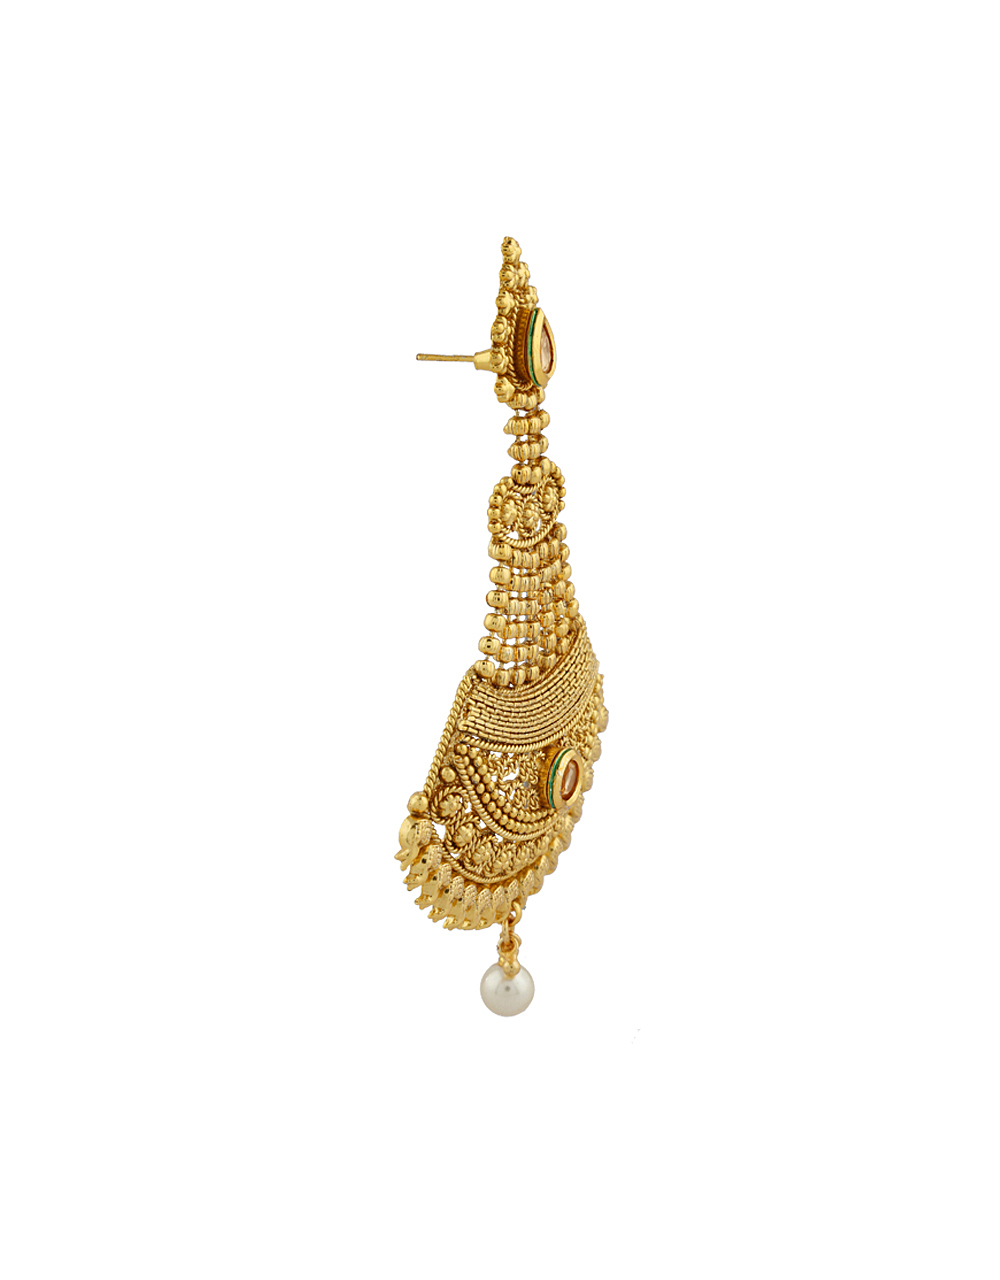 Gold Finish Pearl Beads Droplet Earrings Pair Studded With LCT Stones